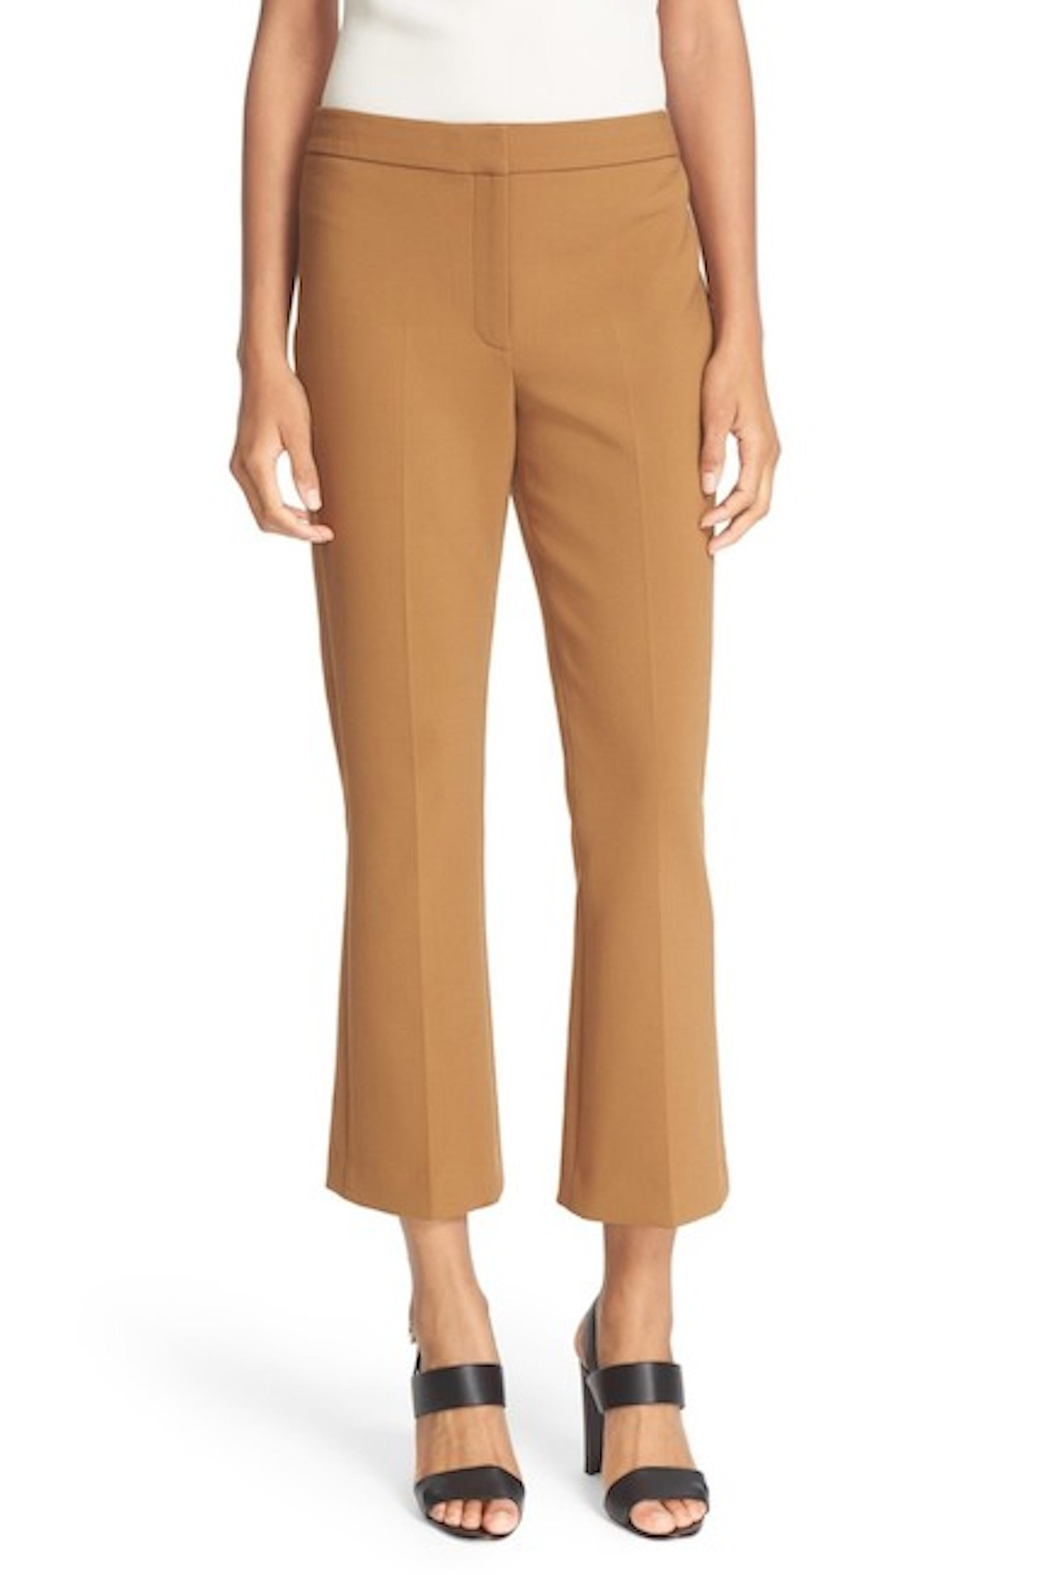 Theory Cropped Tan Pants - Main Image